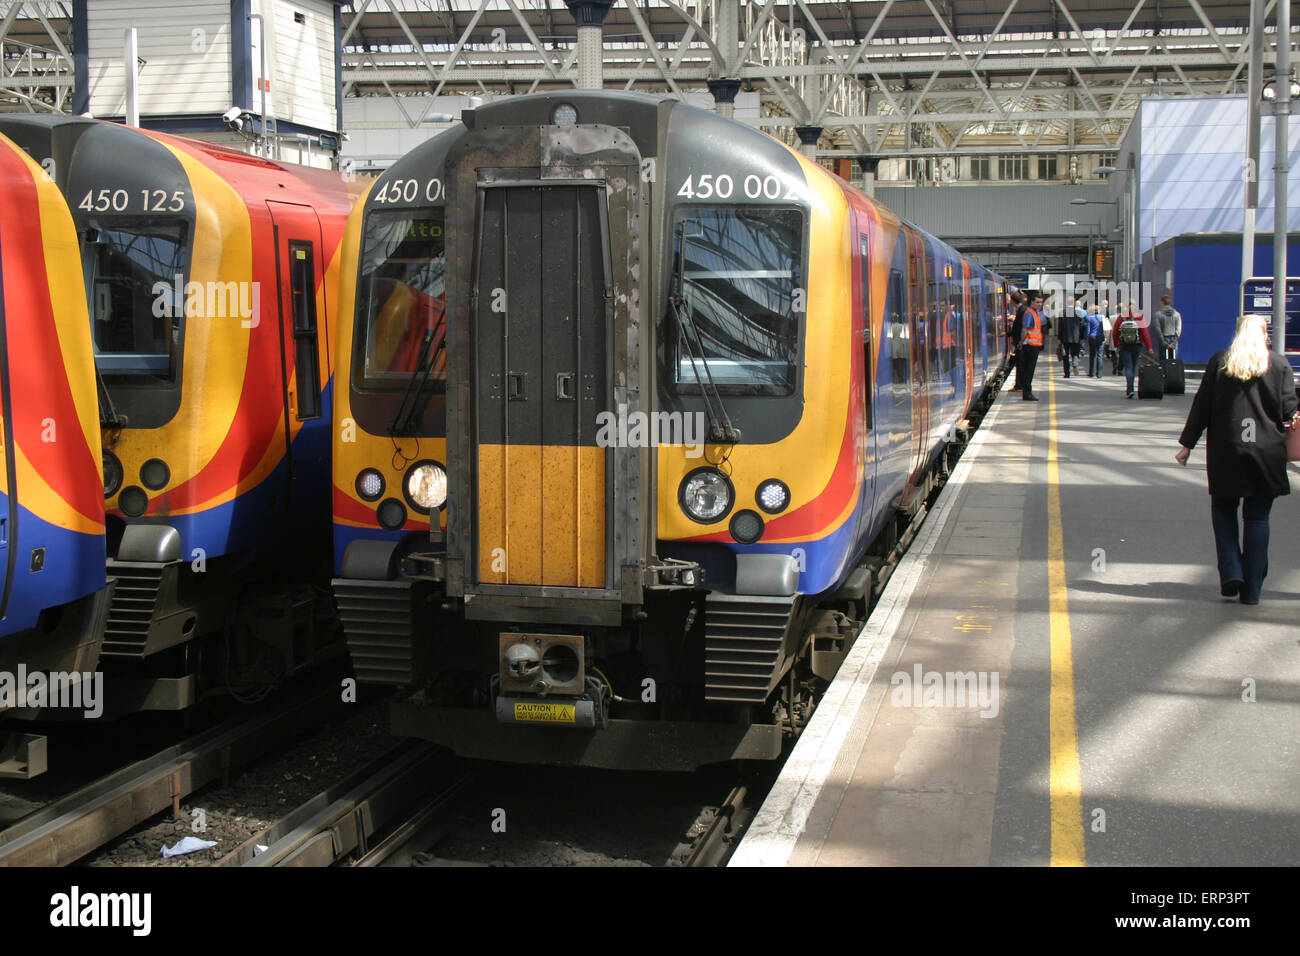 South East Southeastern Trains